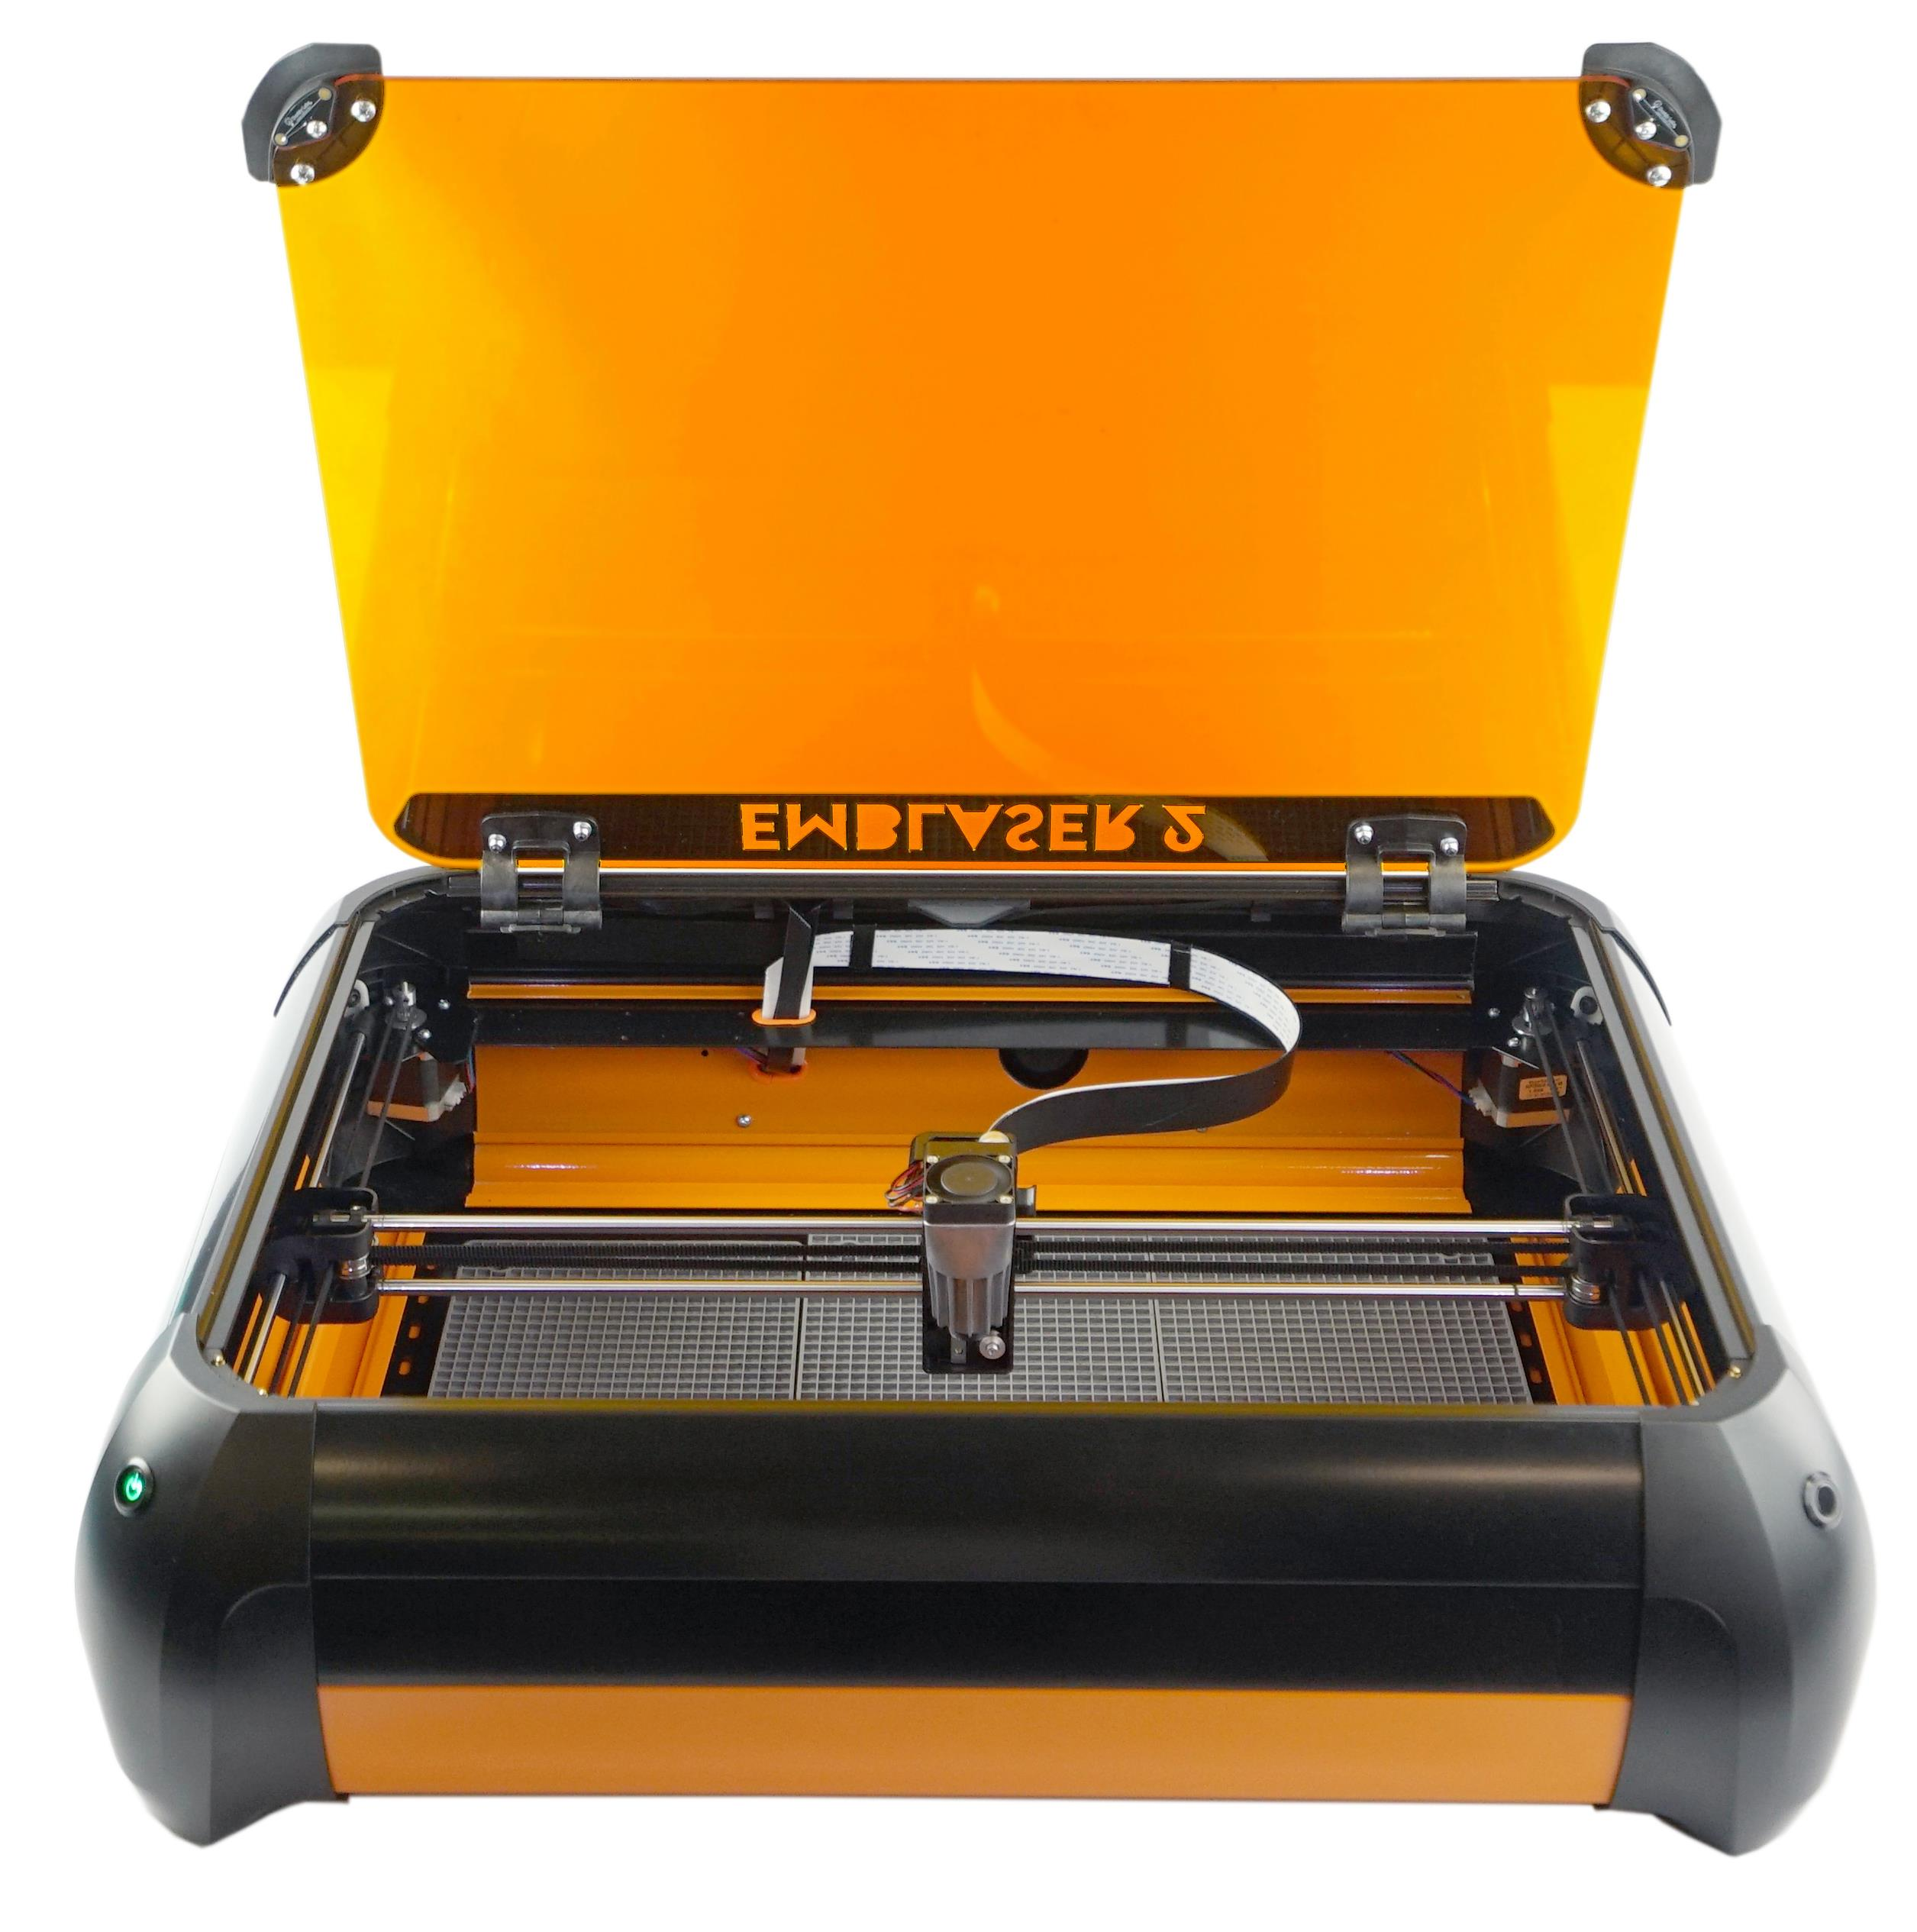 Emblaser 2 - Laser Cutter & Engraver with Air-Assist